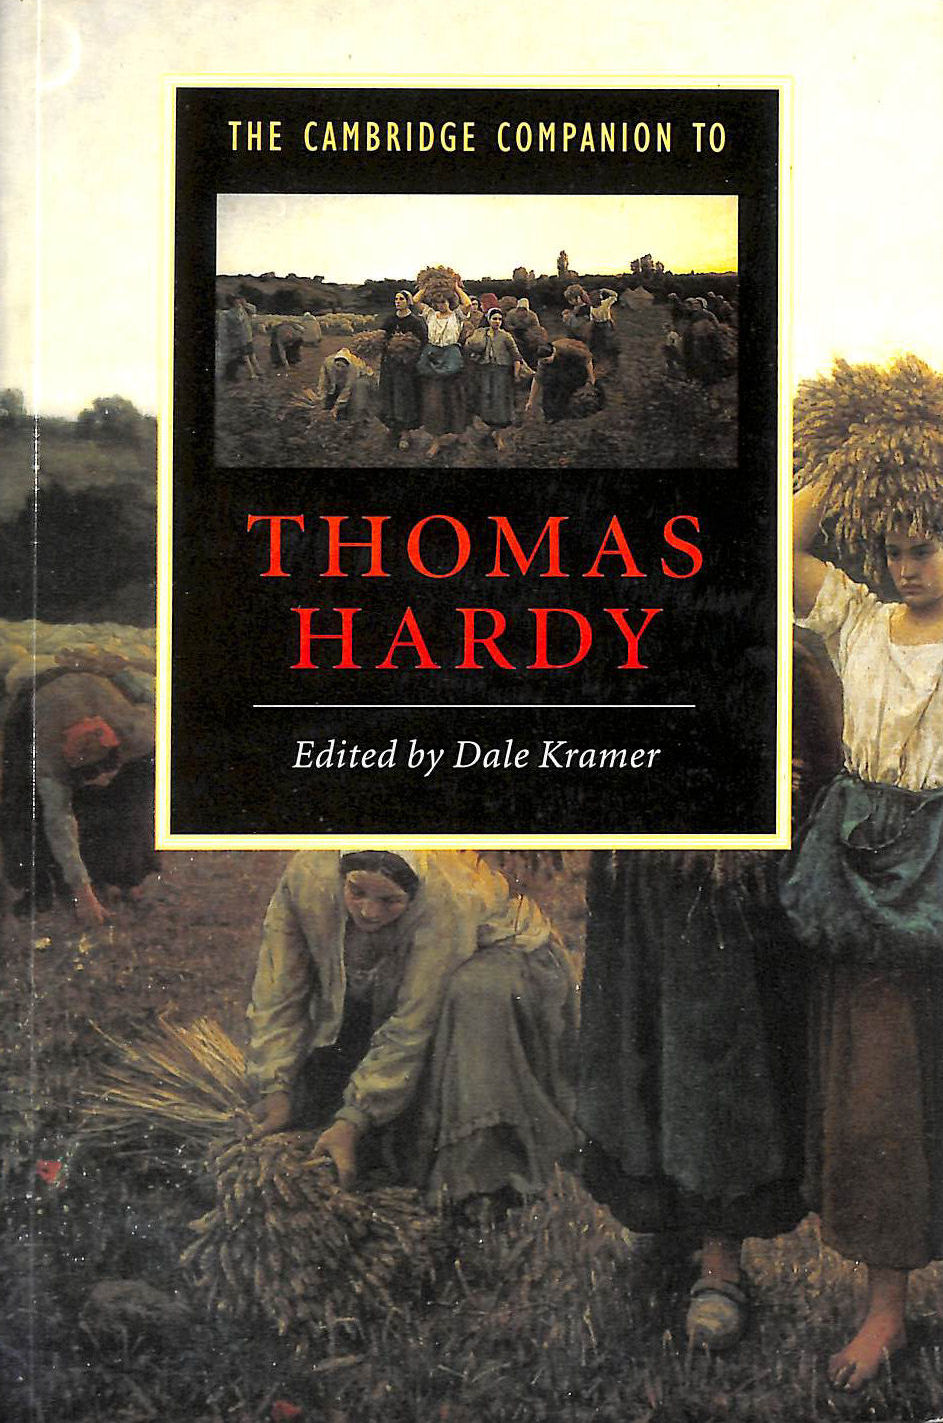 Image for Cambridge Companion to Thomas Hardy (Cambridge Companions to Literature)